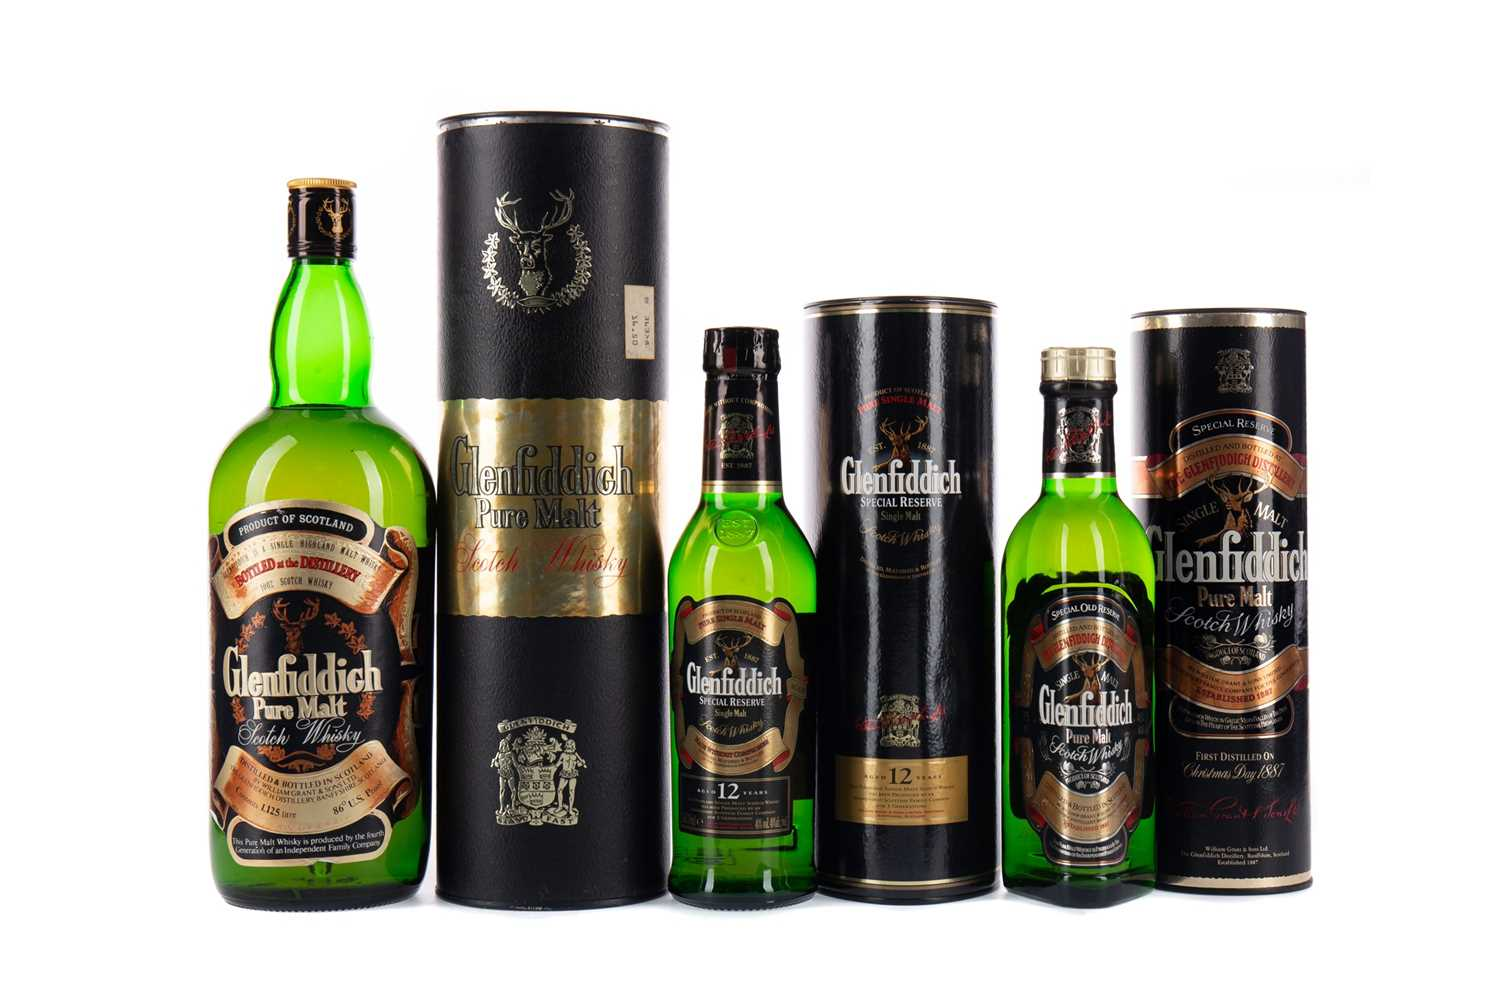 Lot 45 - 1.125 LITRES OF GLENFIDDICH PURE MALT, AND HALF BOTTLES OF GLENFIDDICH SPECIAL OLD RESERVE AND SPECIAL RESERVE 12 YEARS OLD